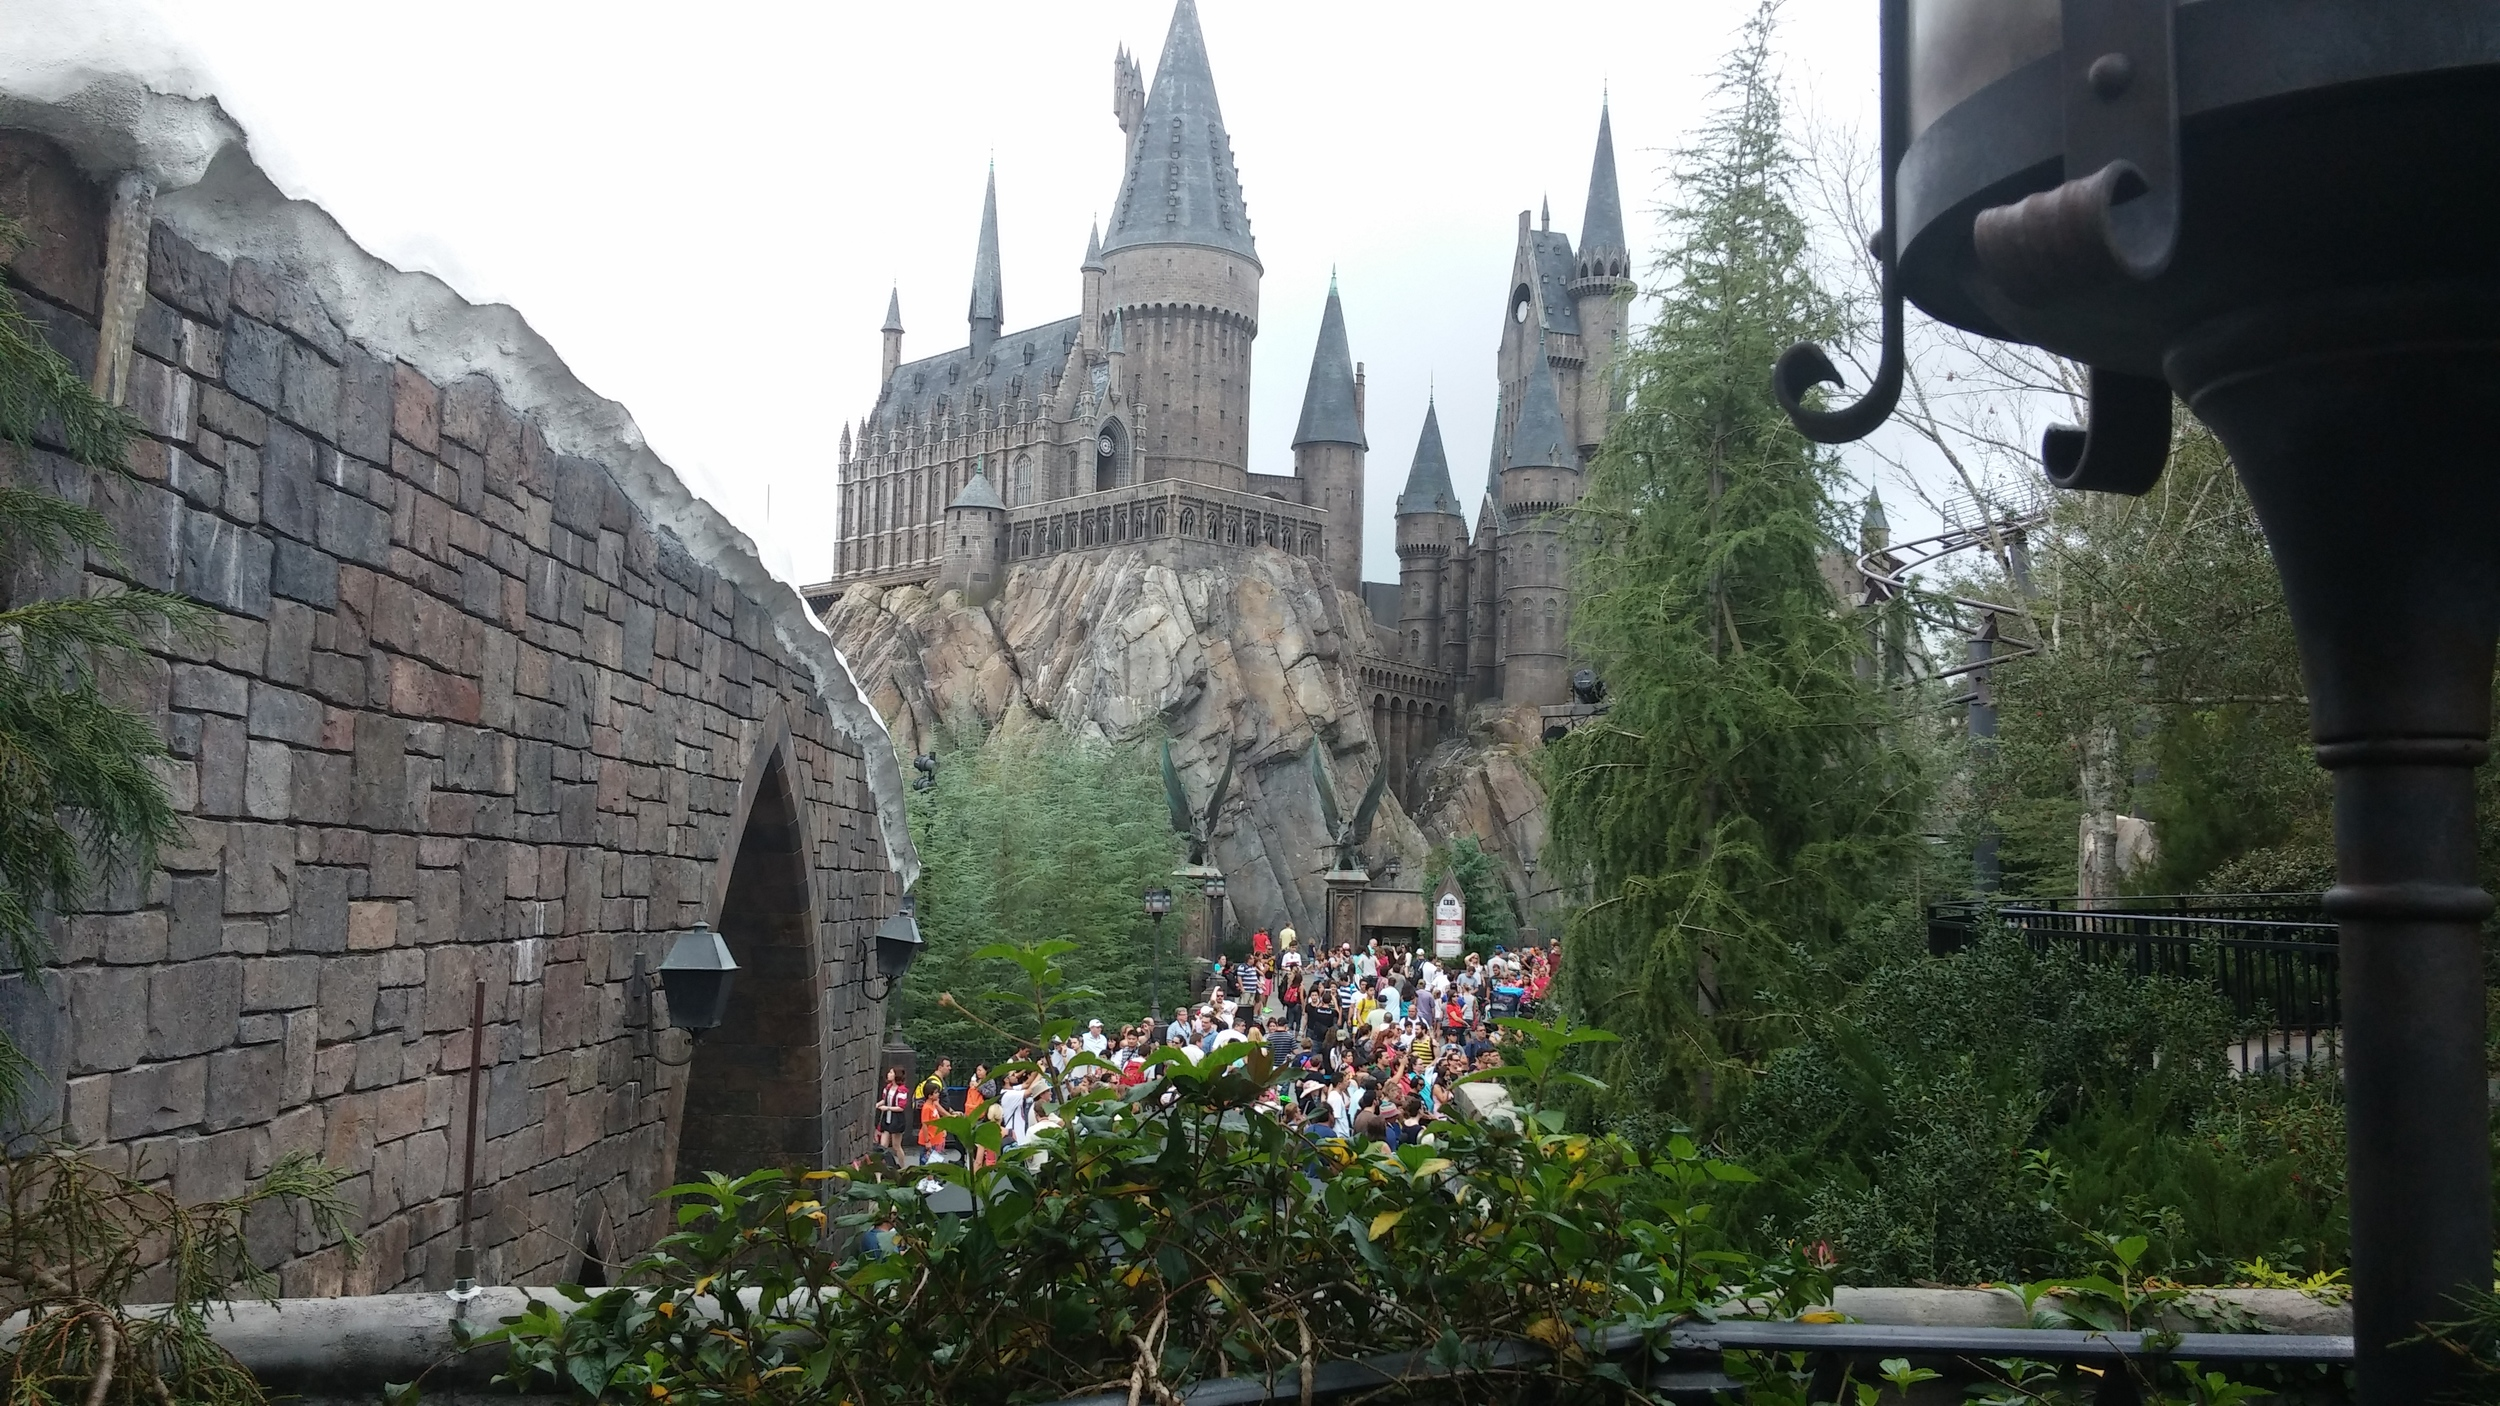 Universal Orlando Wizarding World of Harry Potter - Hogwarts School of Witchcraft and Wizardry